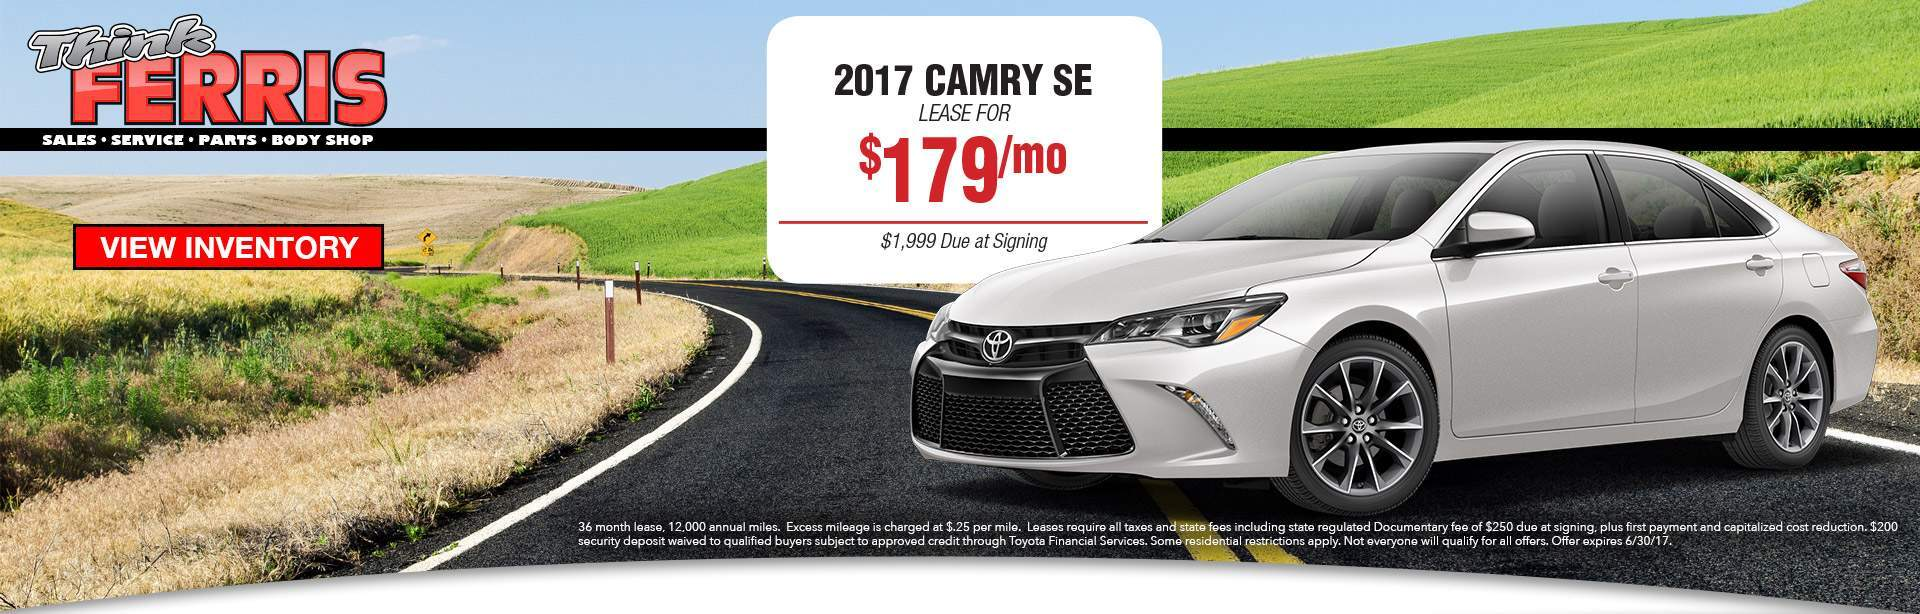 Camry Lease Pricing